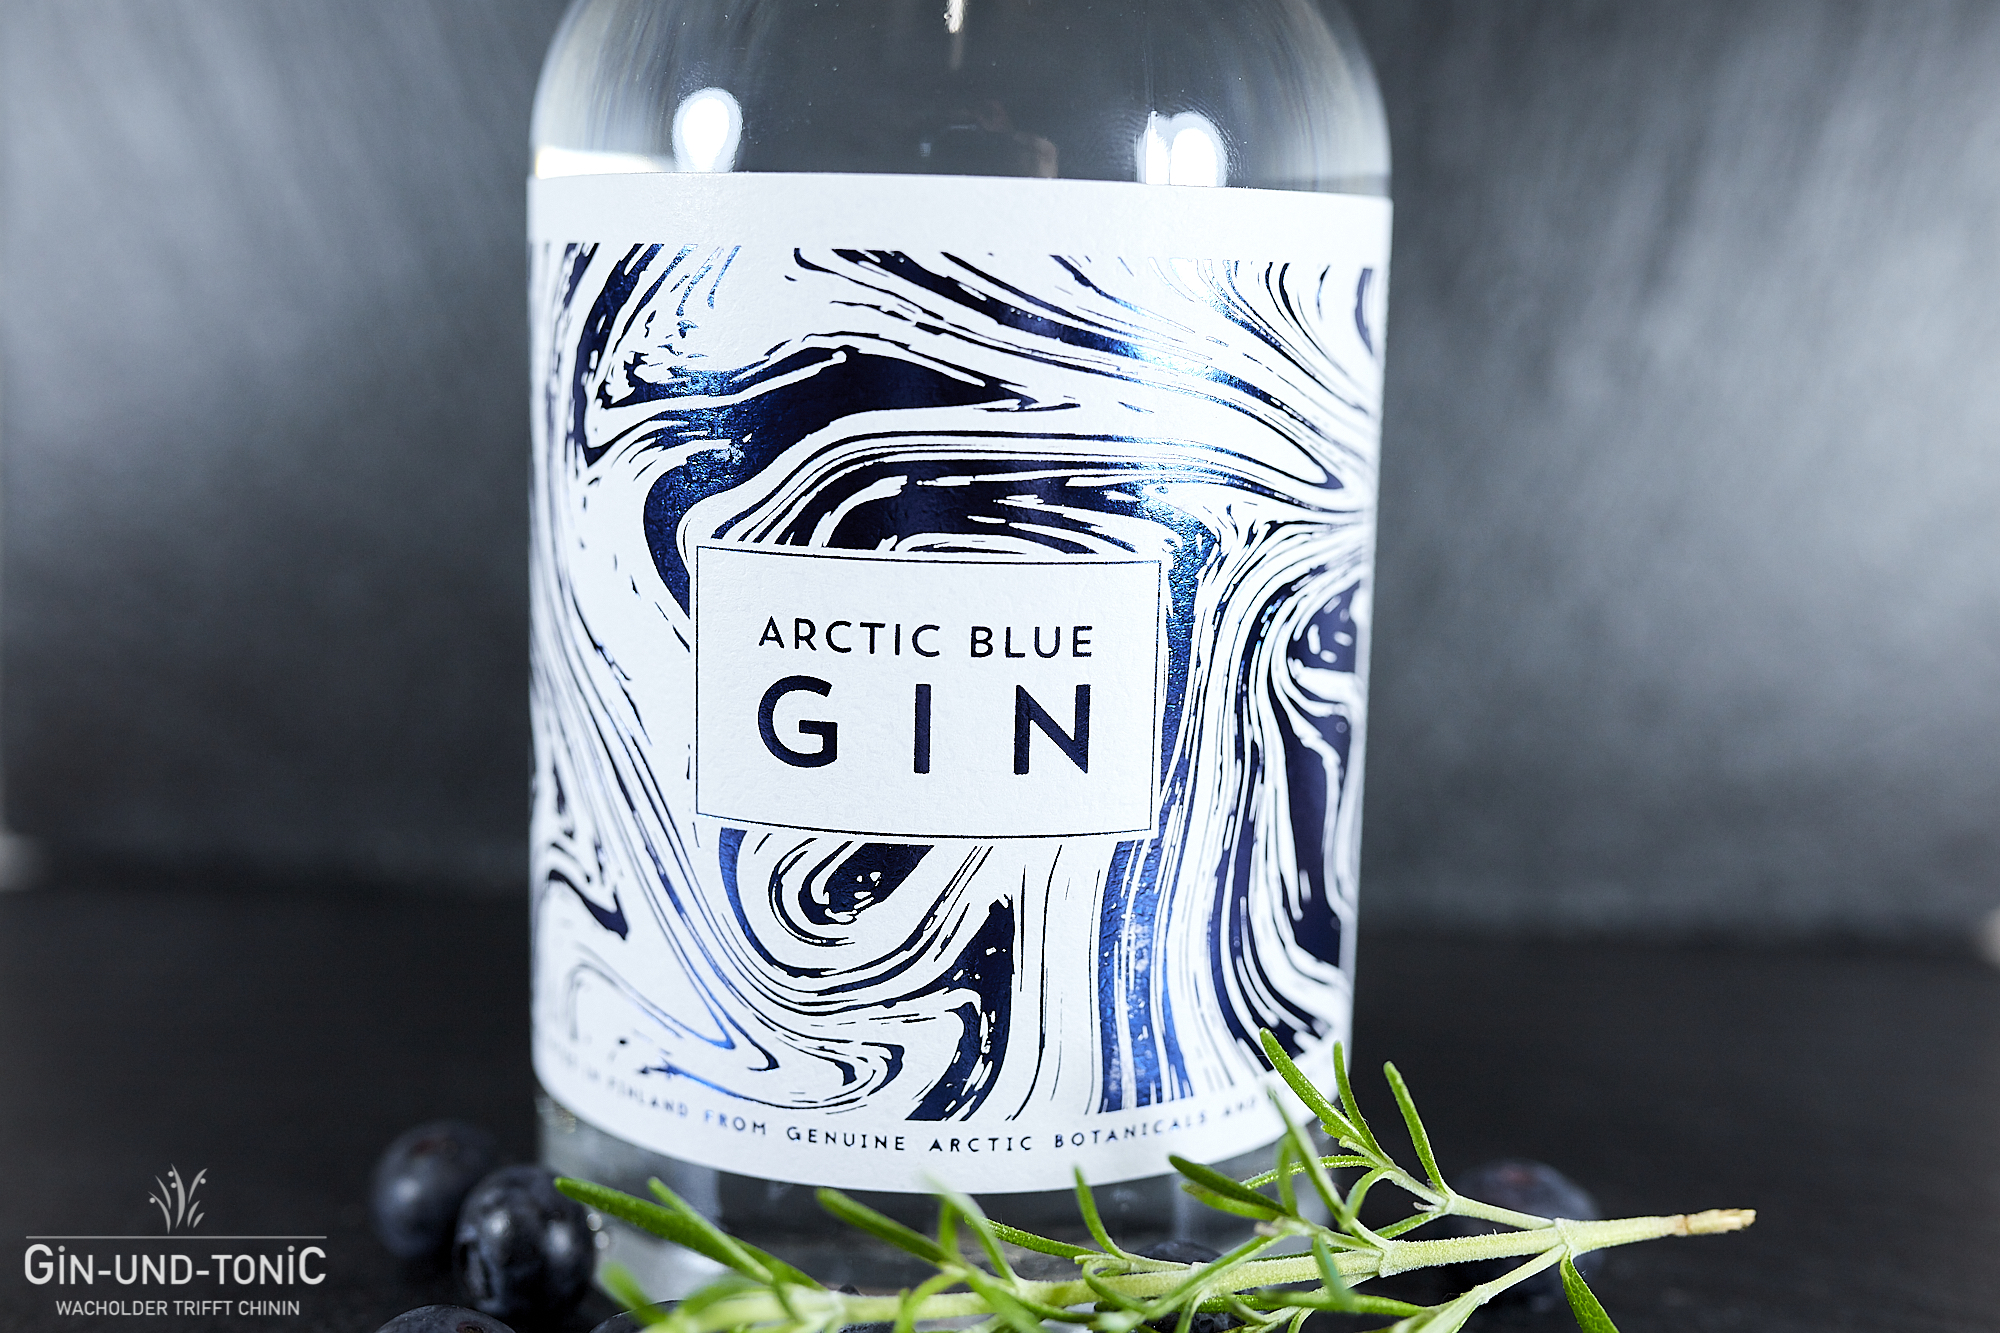 Arctic Blue Gin